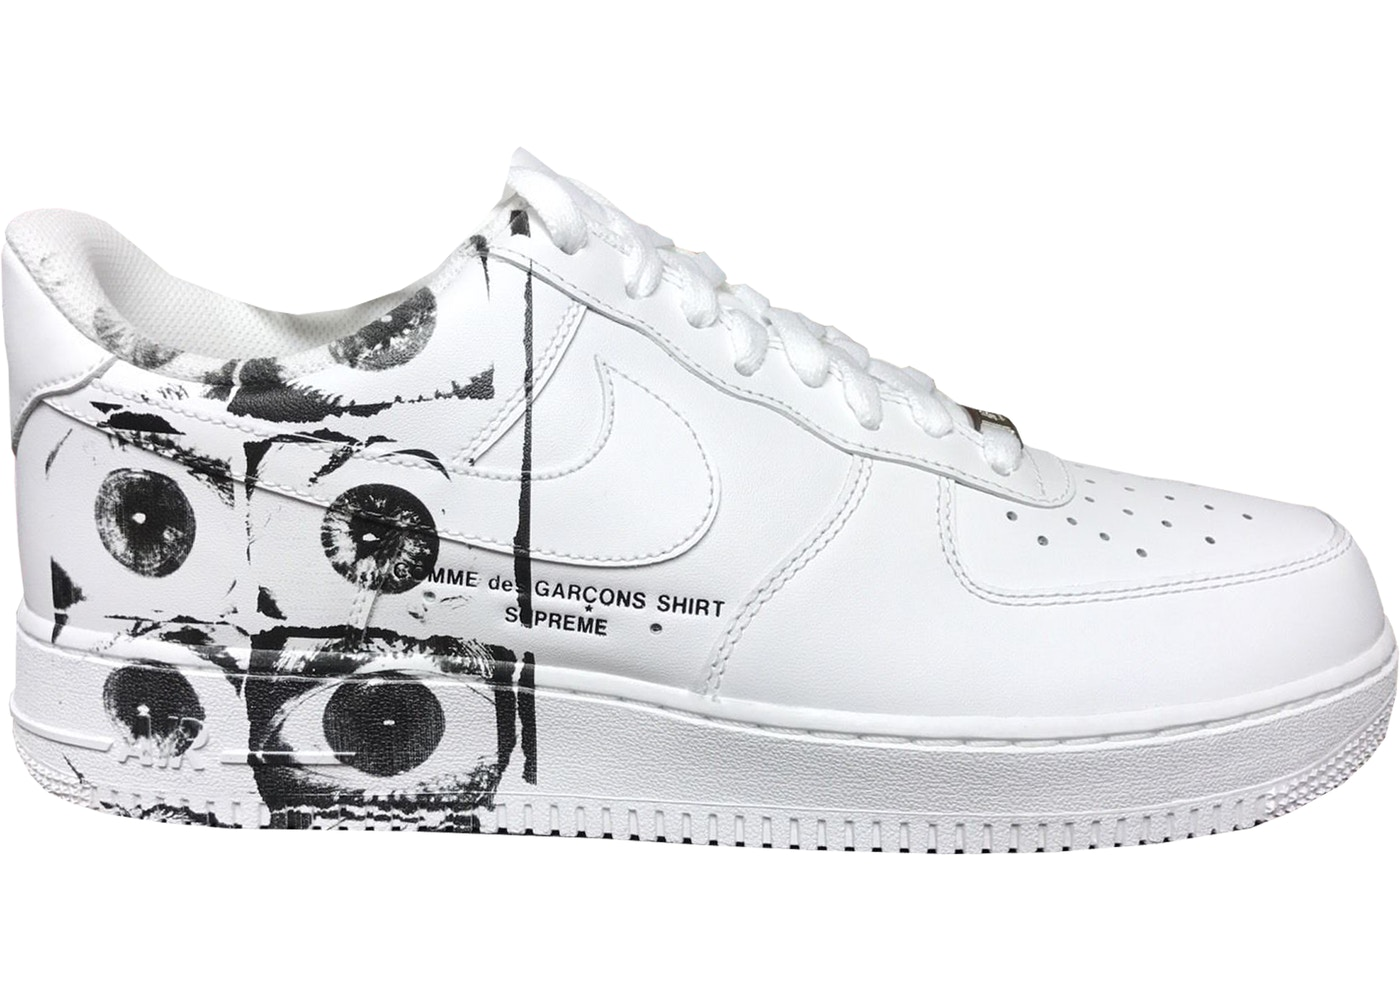 Air Force 1 Low Supreme Comme des Garcons Shirt